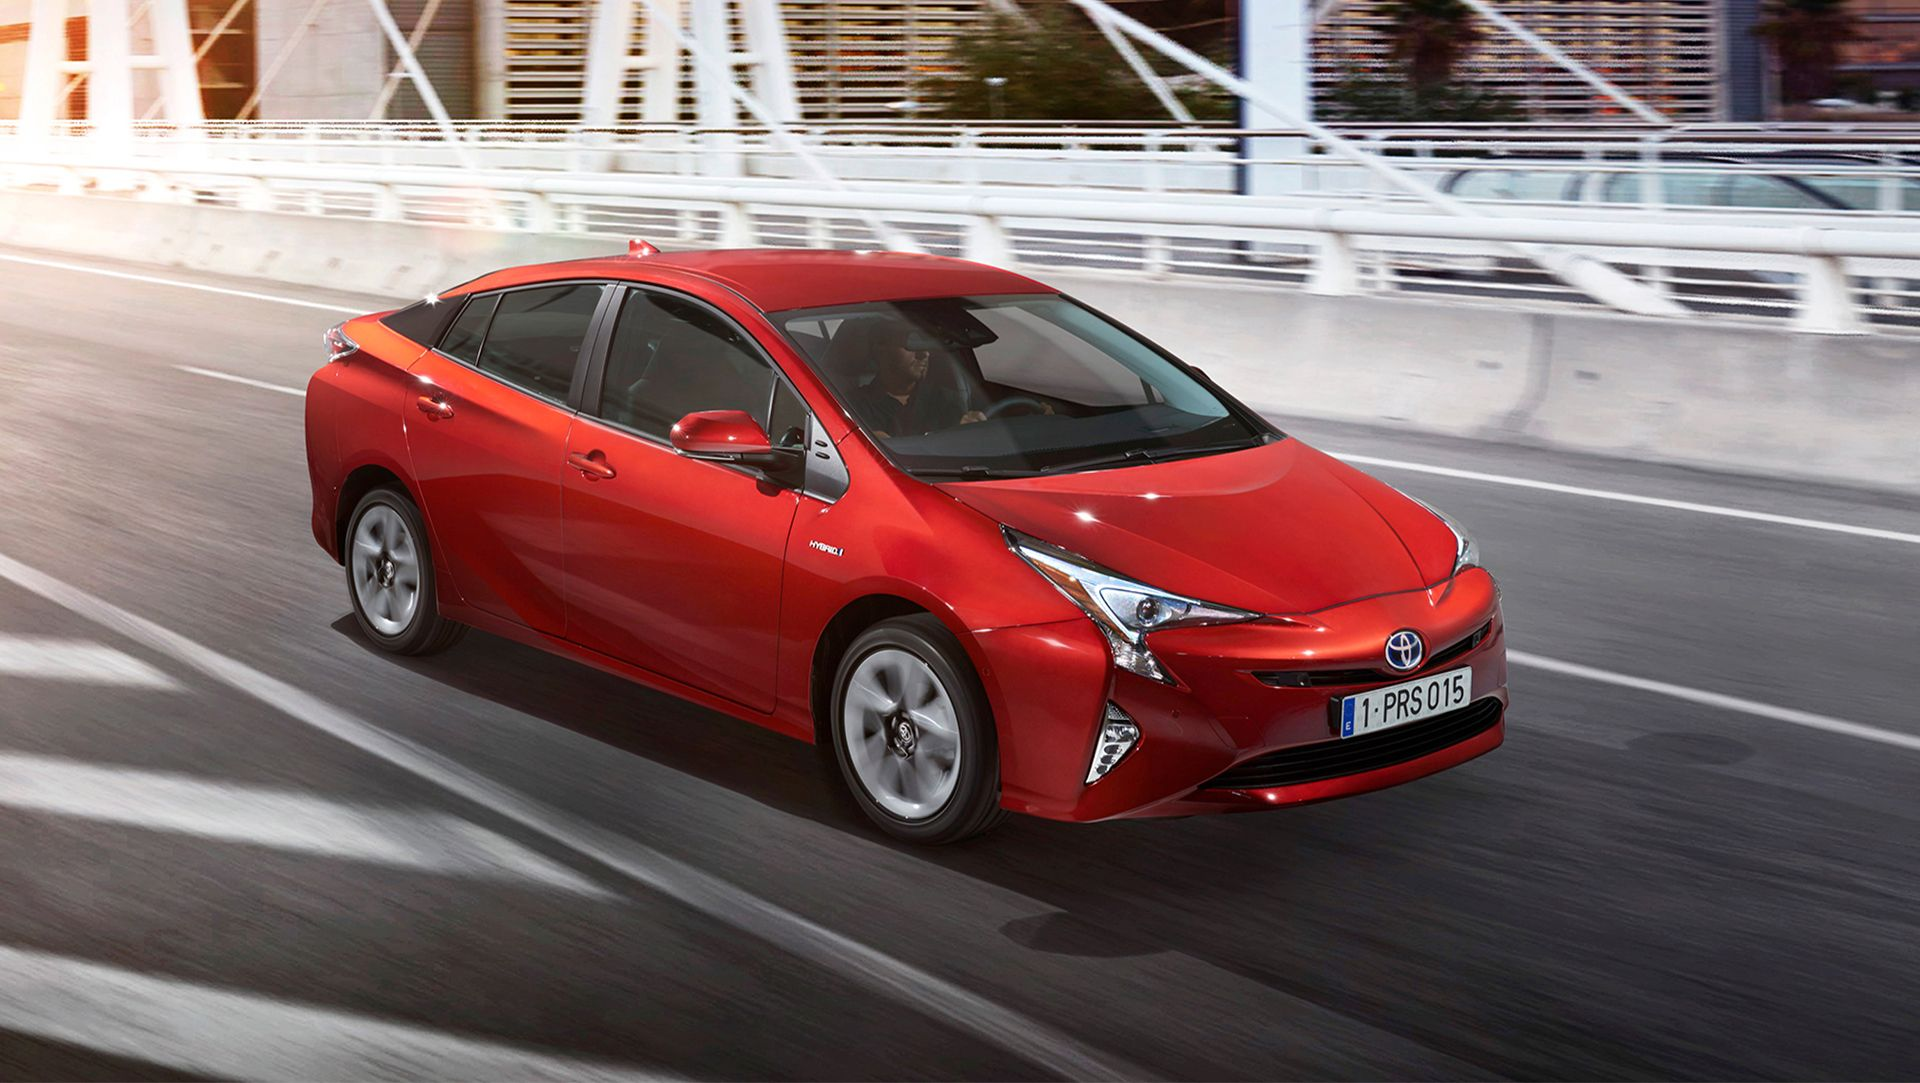 And We Thought The Third Generation Prius Had The Looks Only A